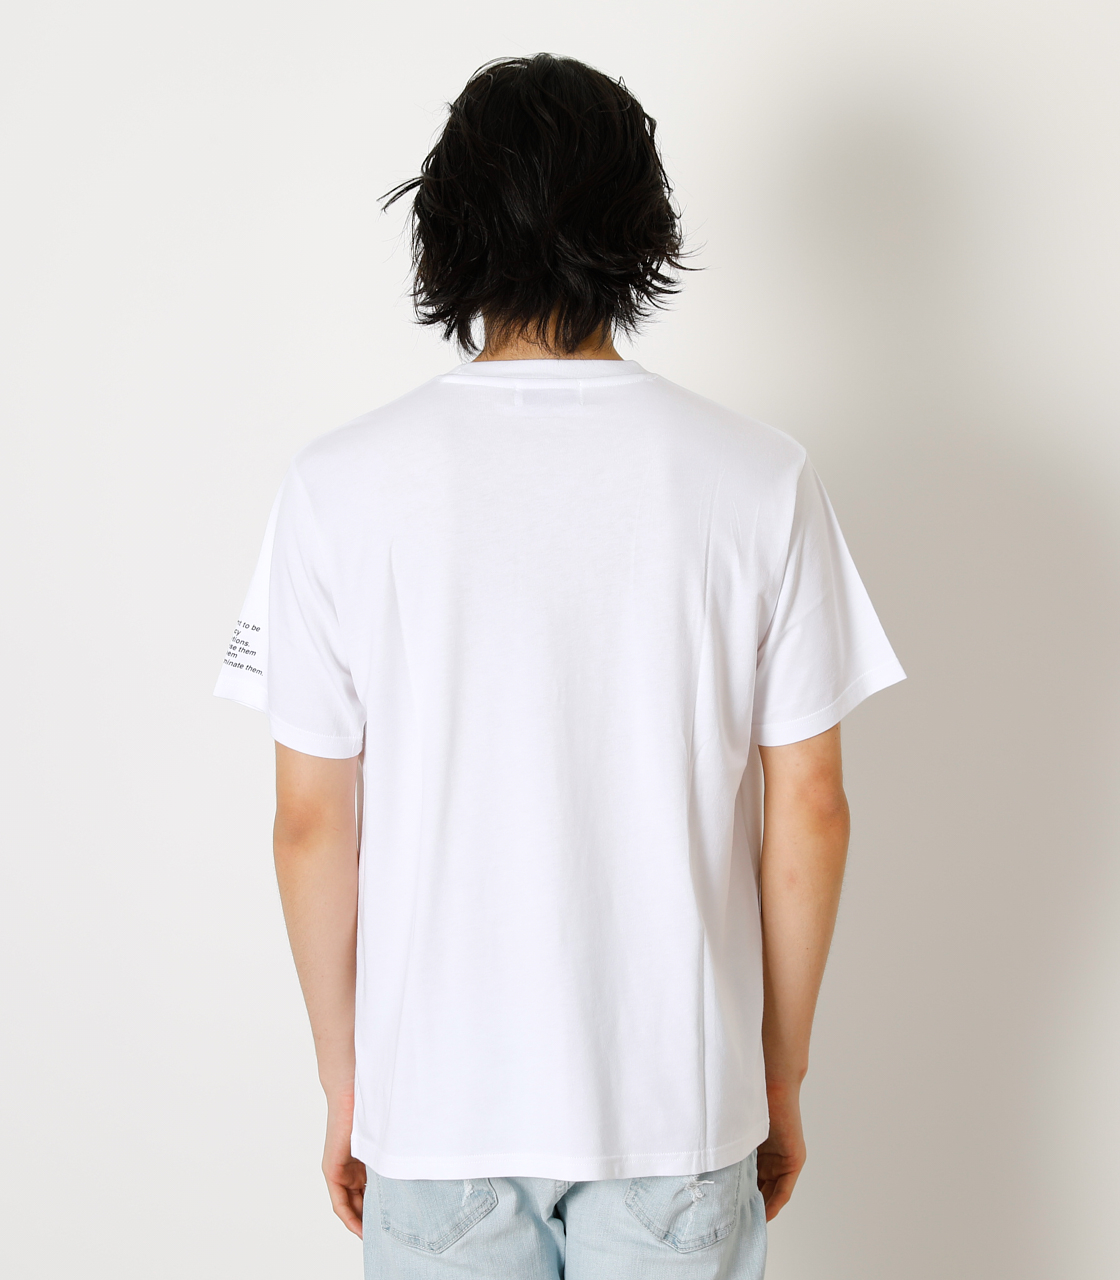 PASSIONATE ABOUT TEE/パッショネイトアバウトTシャツ 詳細画像 WHT 6